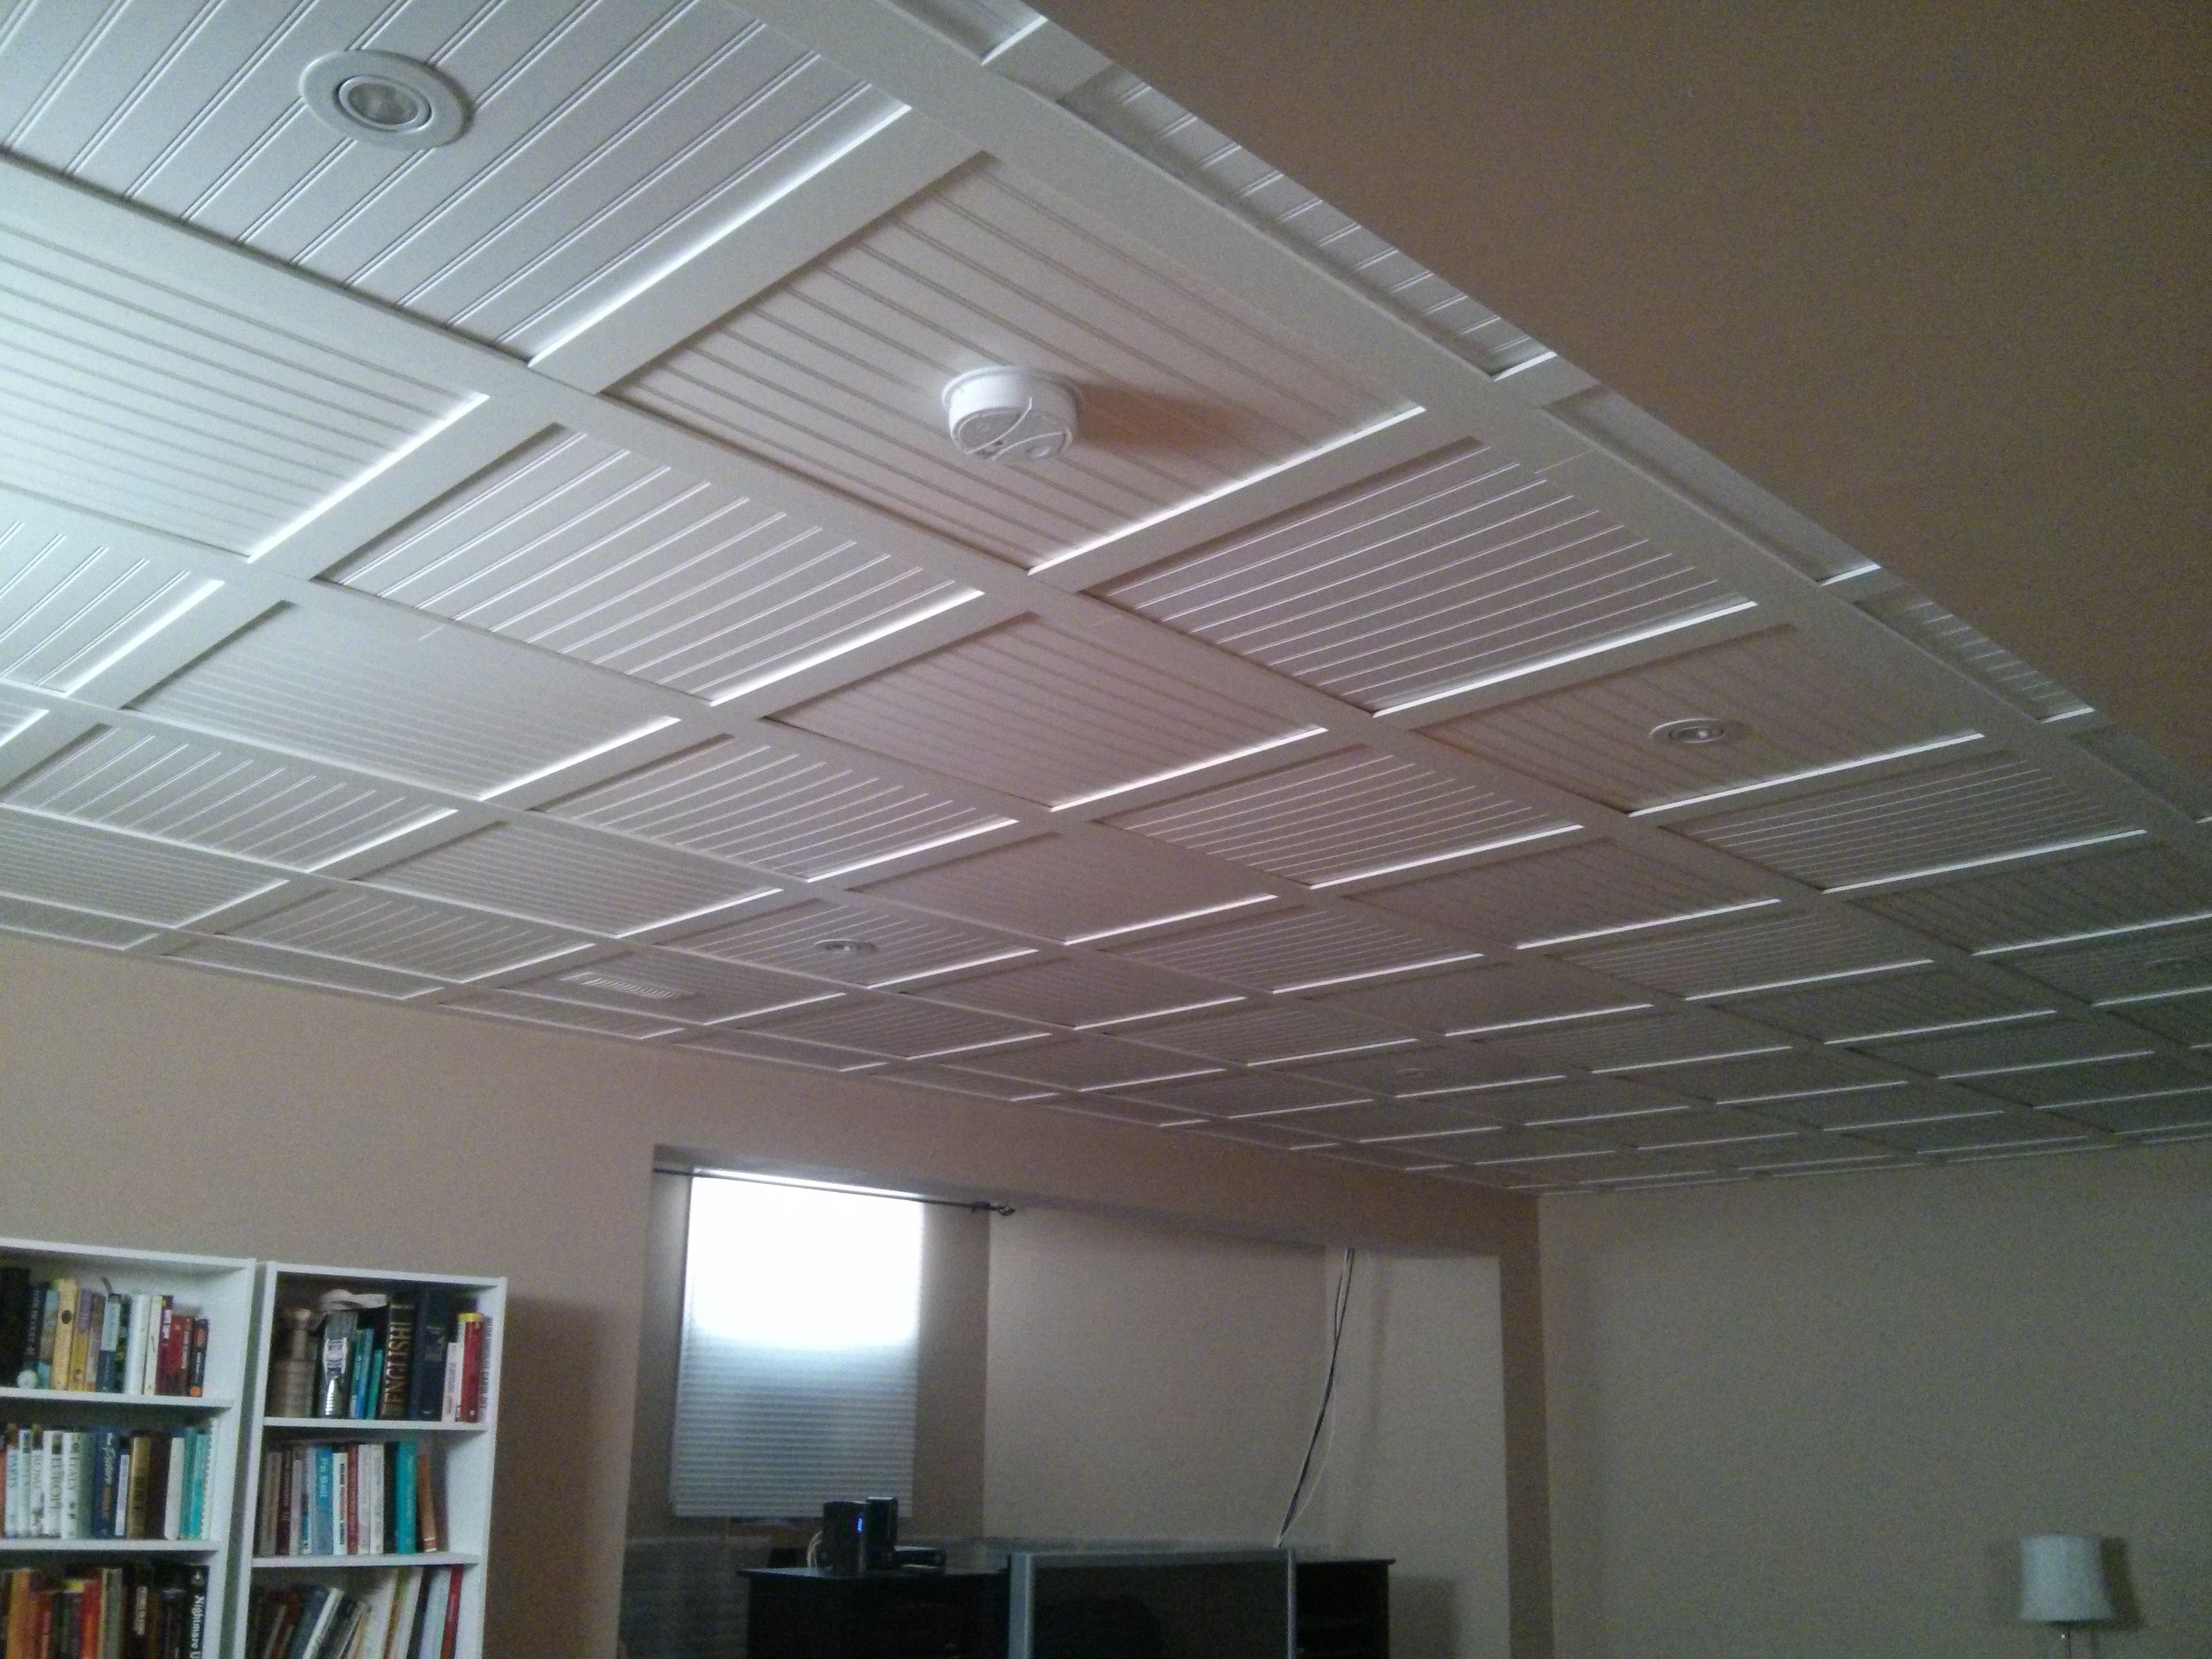 Beadboard drop ceiling tiles httpcreativechairsandtables beadboard drop ceiling tiles dailygadgetfo Choice Image